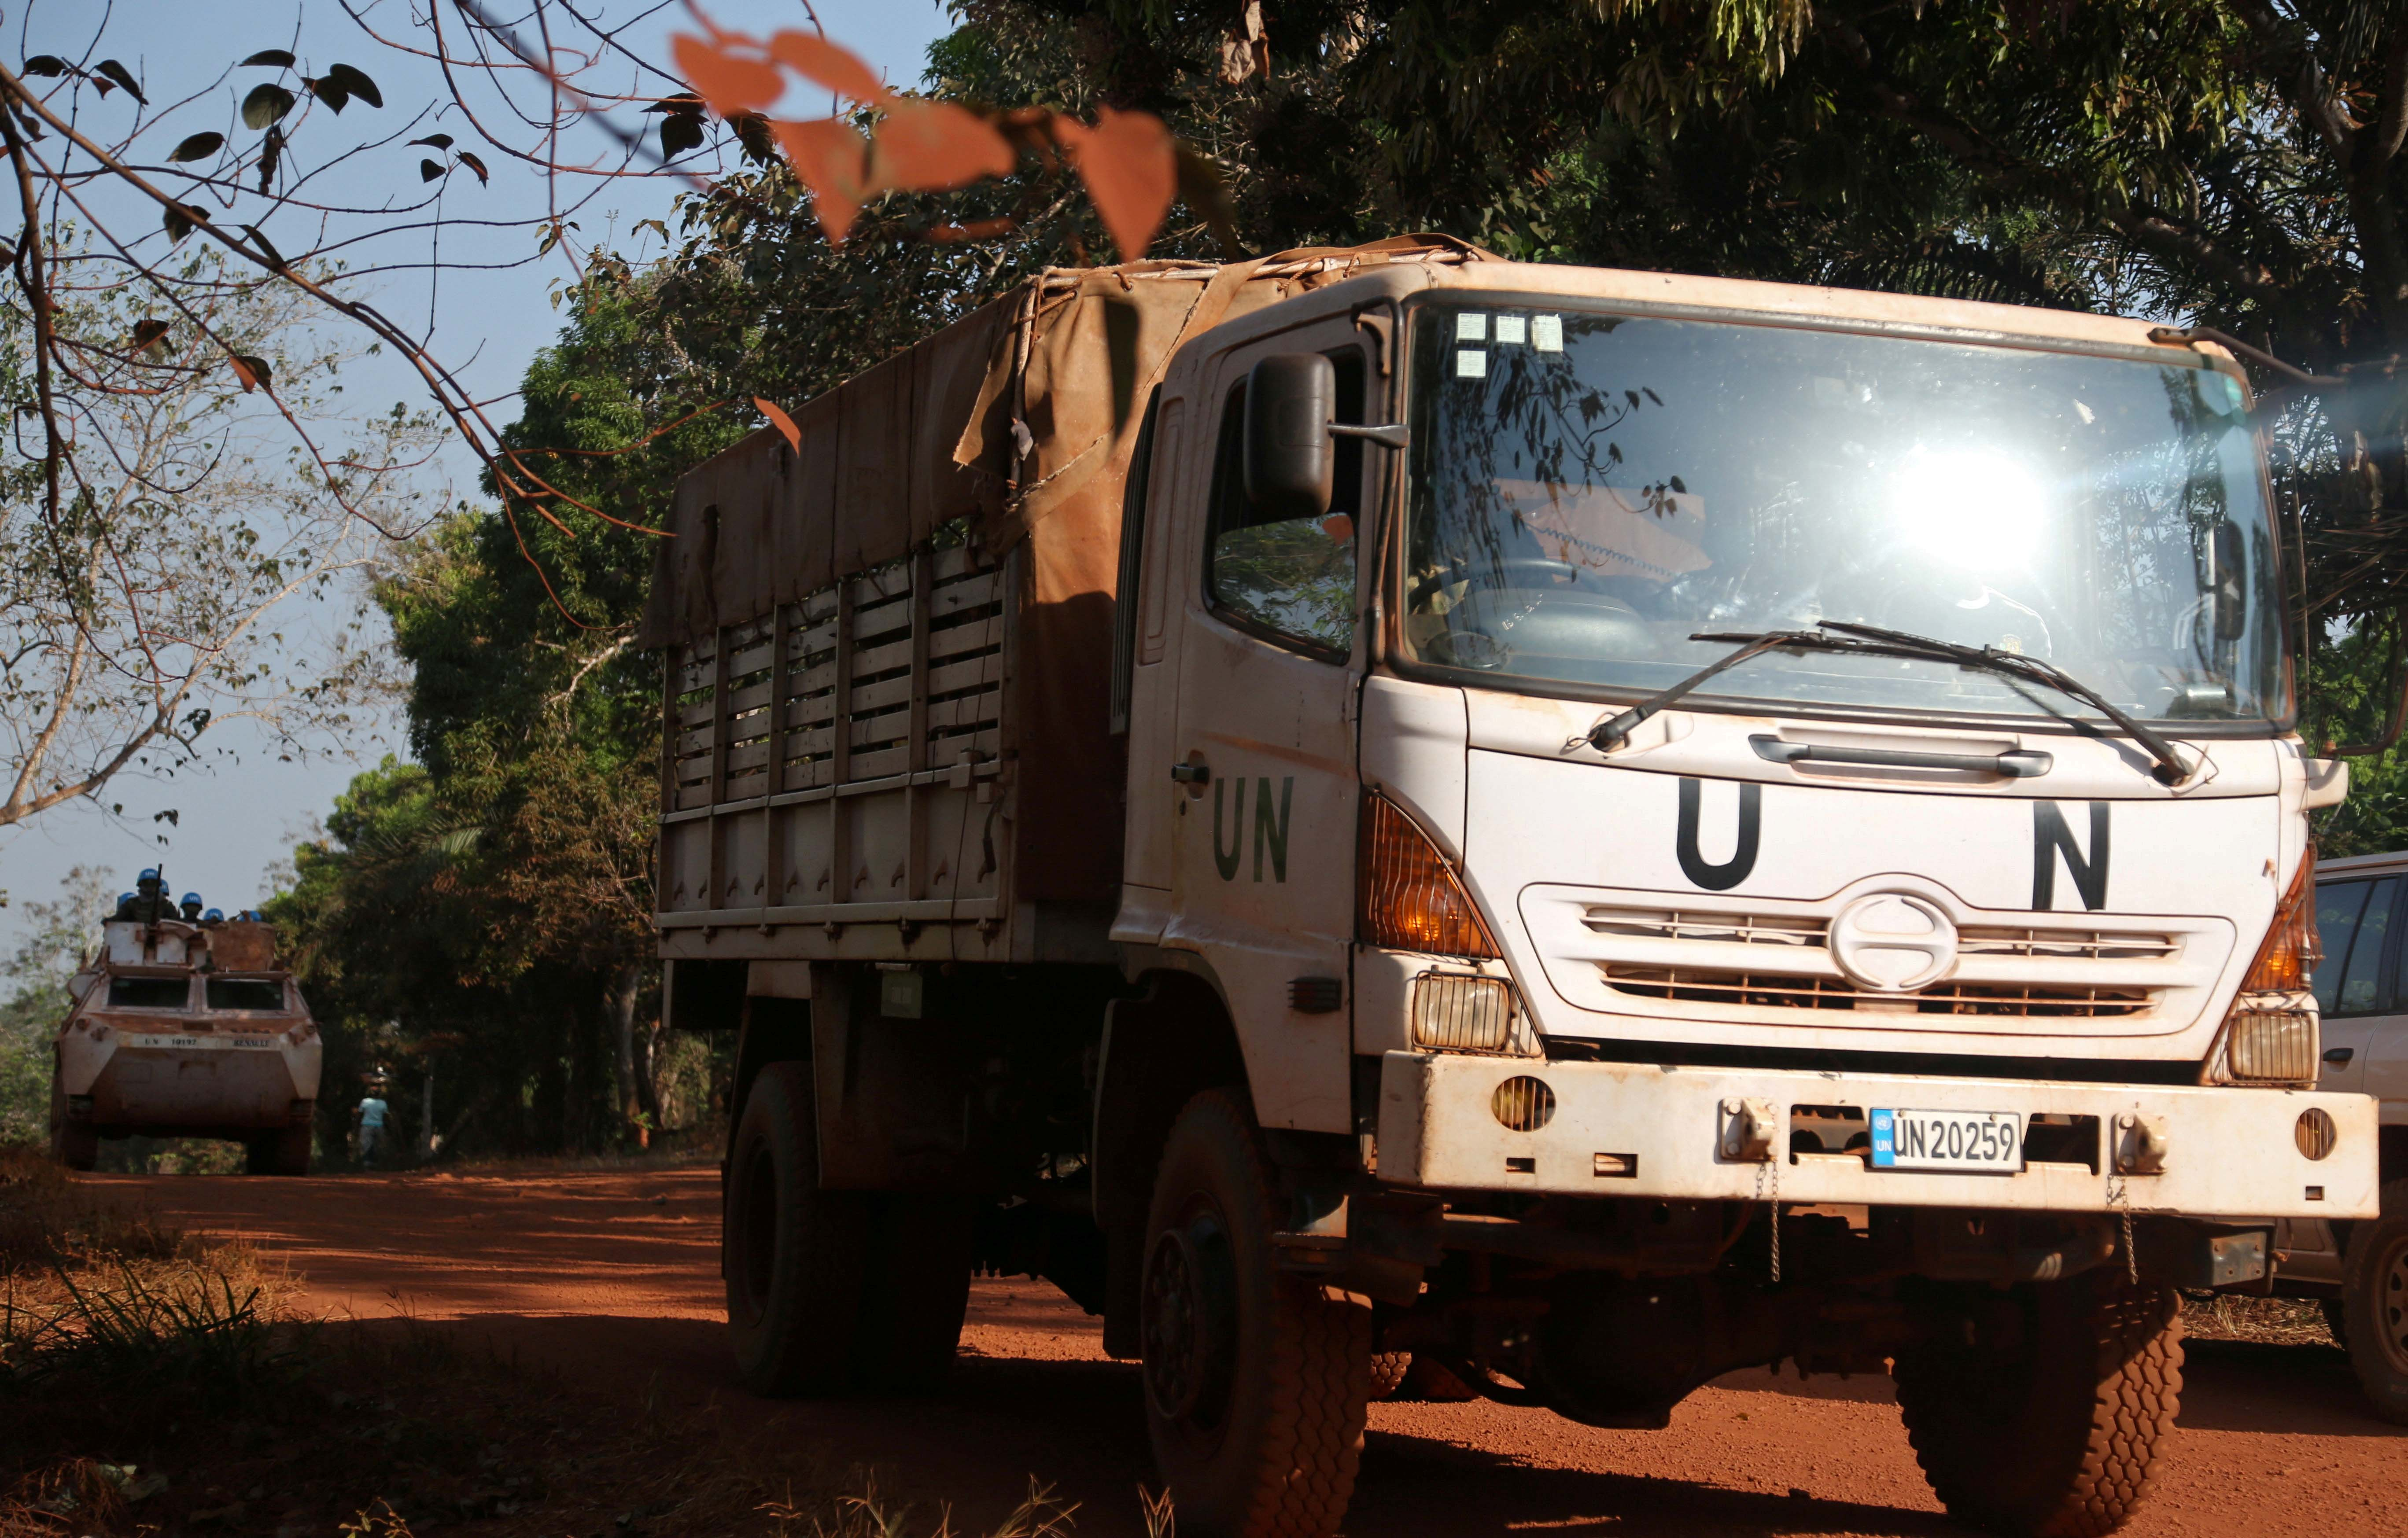 United Nations Multidimensional Integrated Stabilization Mission in the Central African Republic (MINUSCA) transports electoral materials ahead of the upcoming elections in Yongofongo, Central African Republic, on December 17, 2020. Photo: Reuters